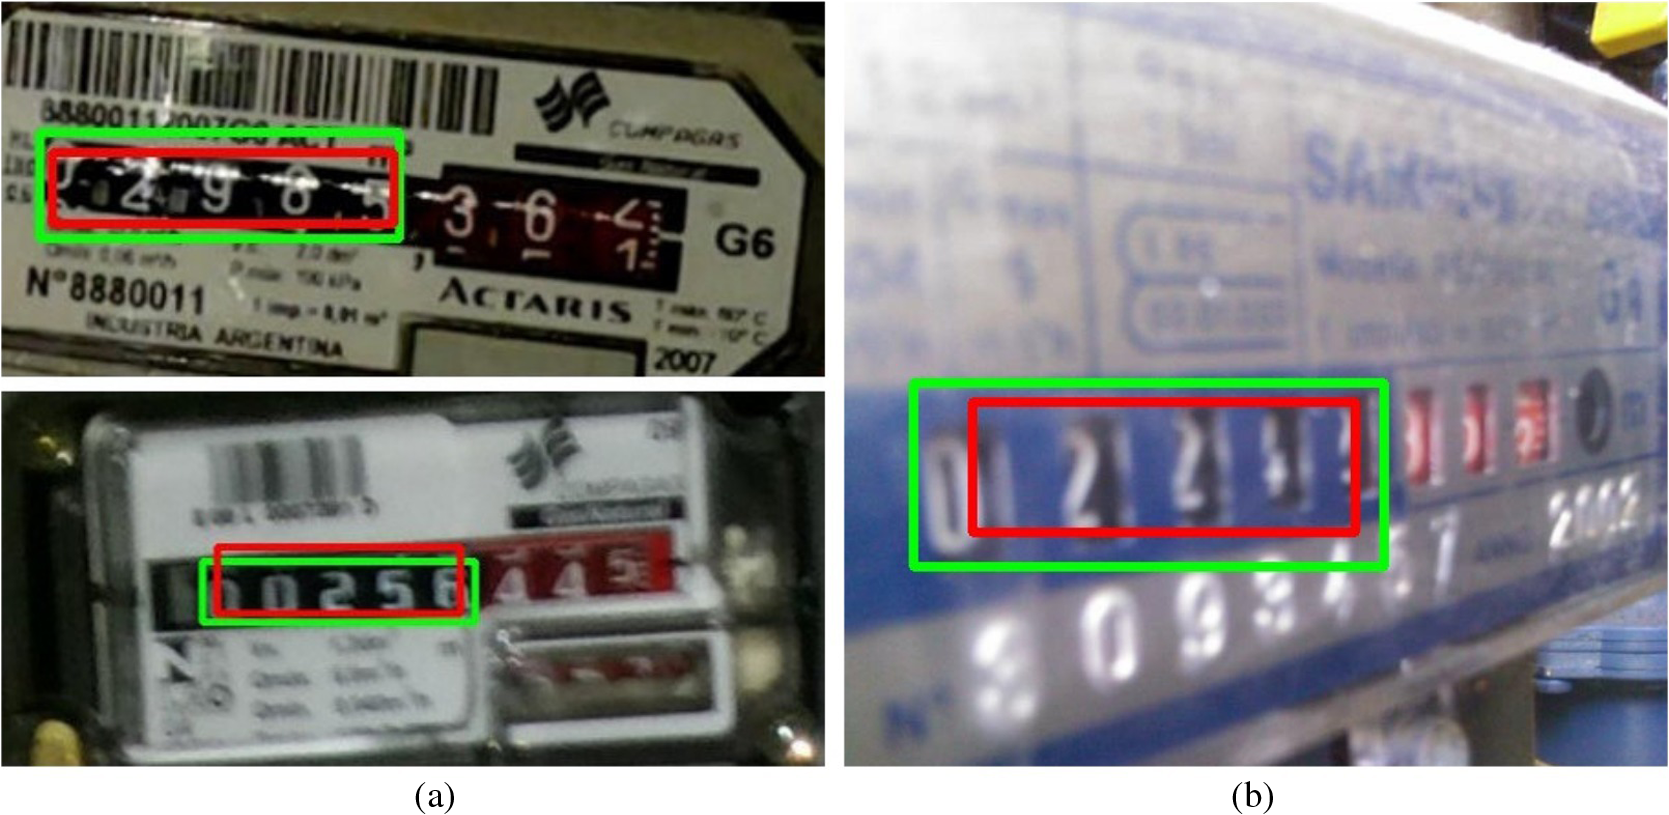 Convolutional neural networks for automatic meter reading